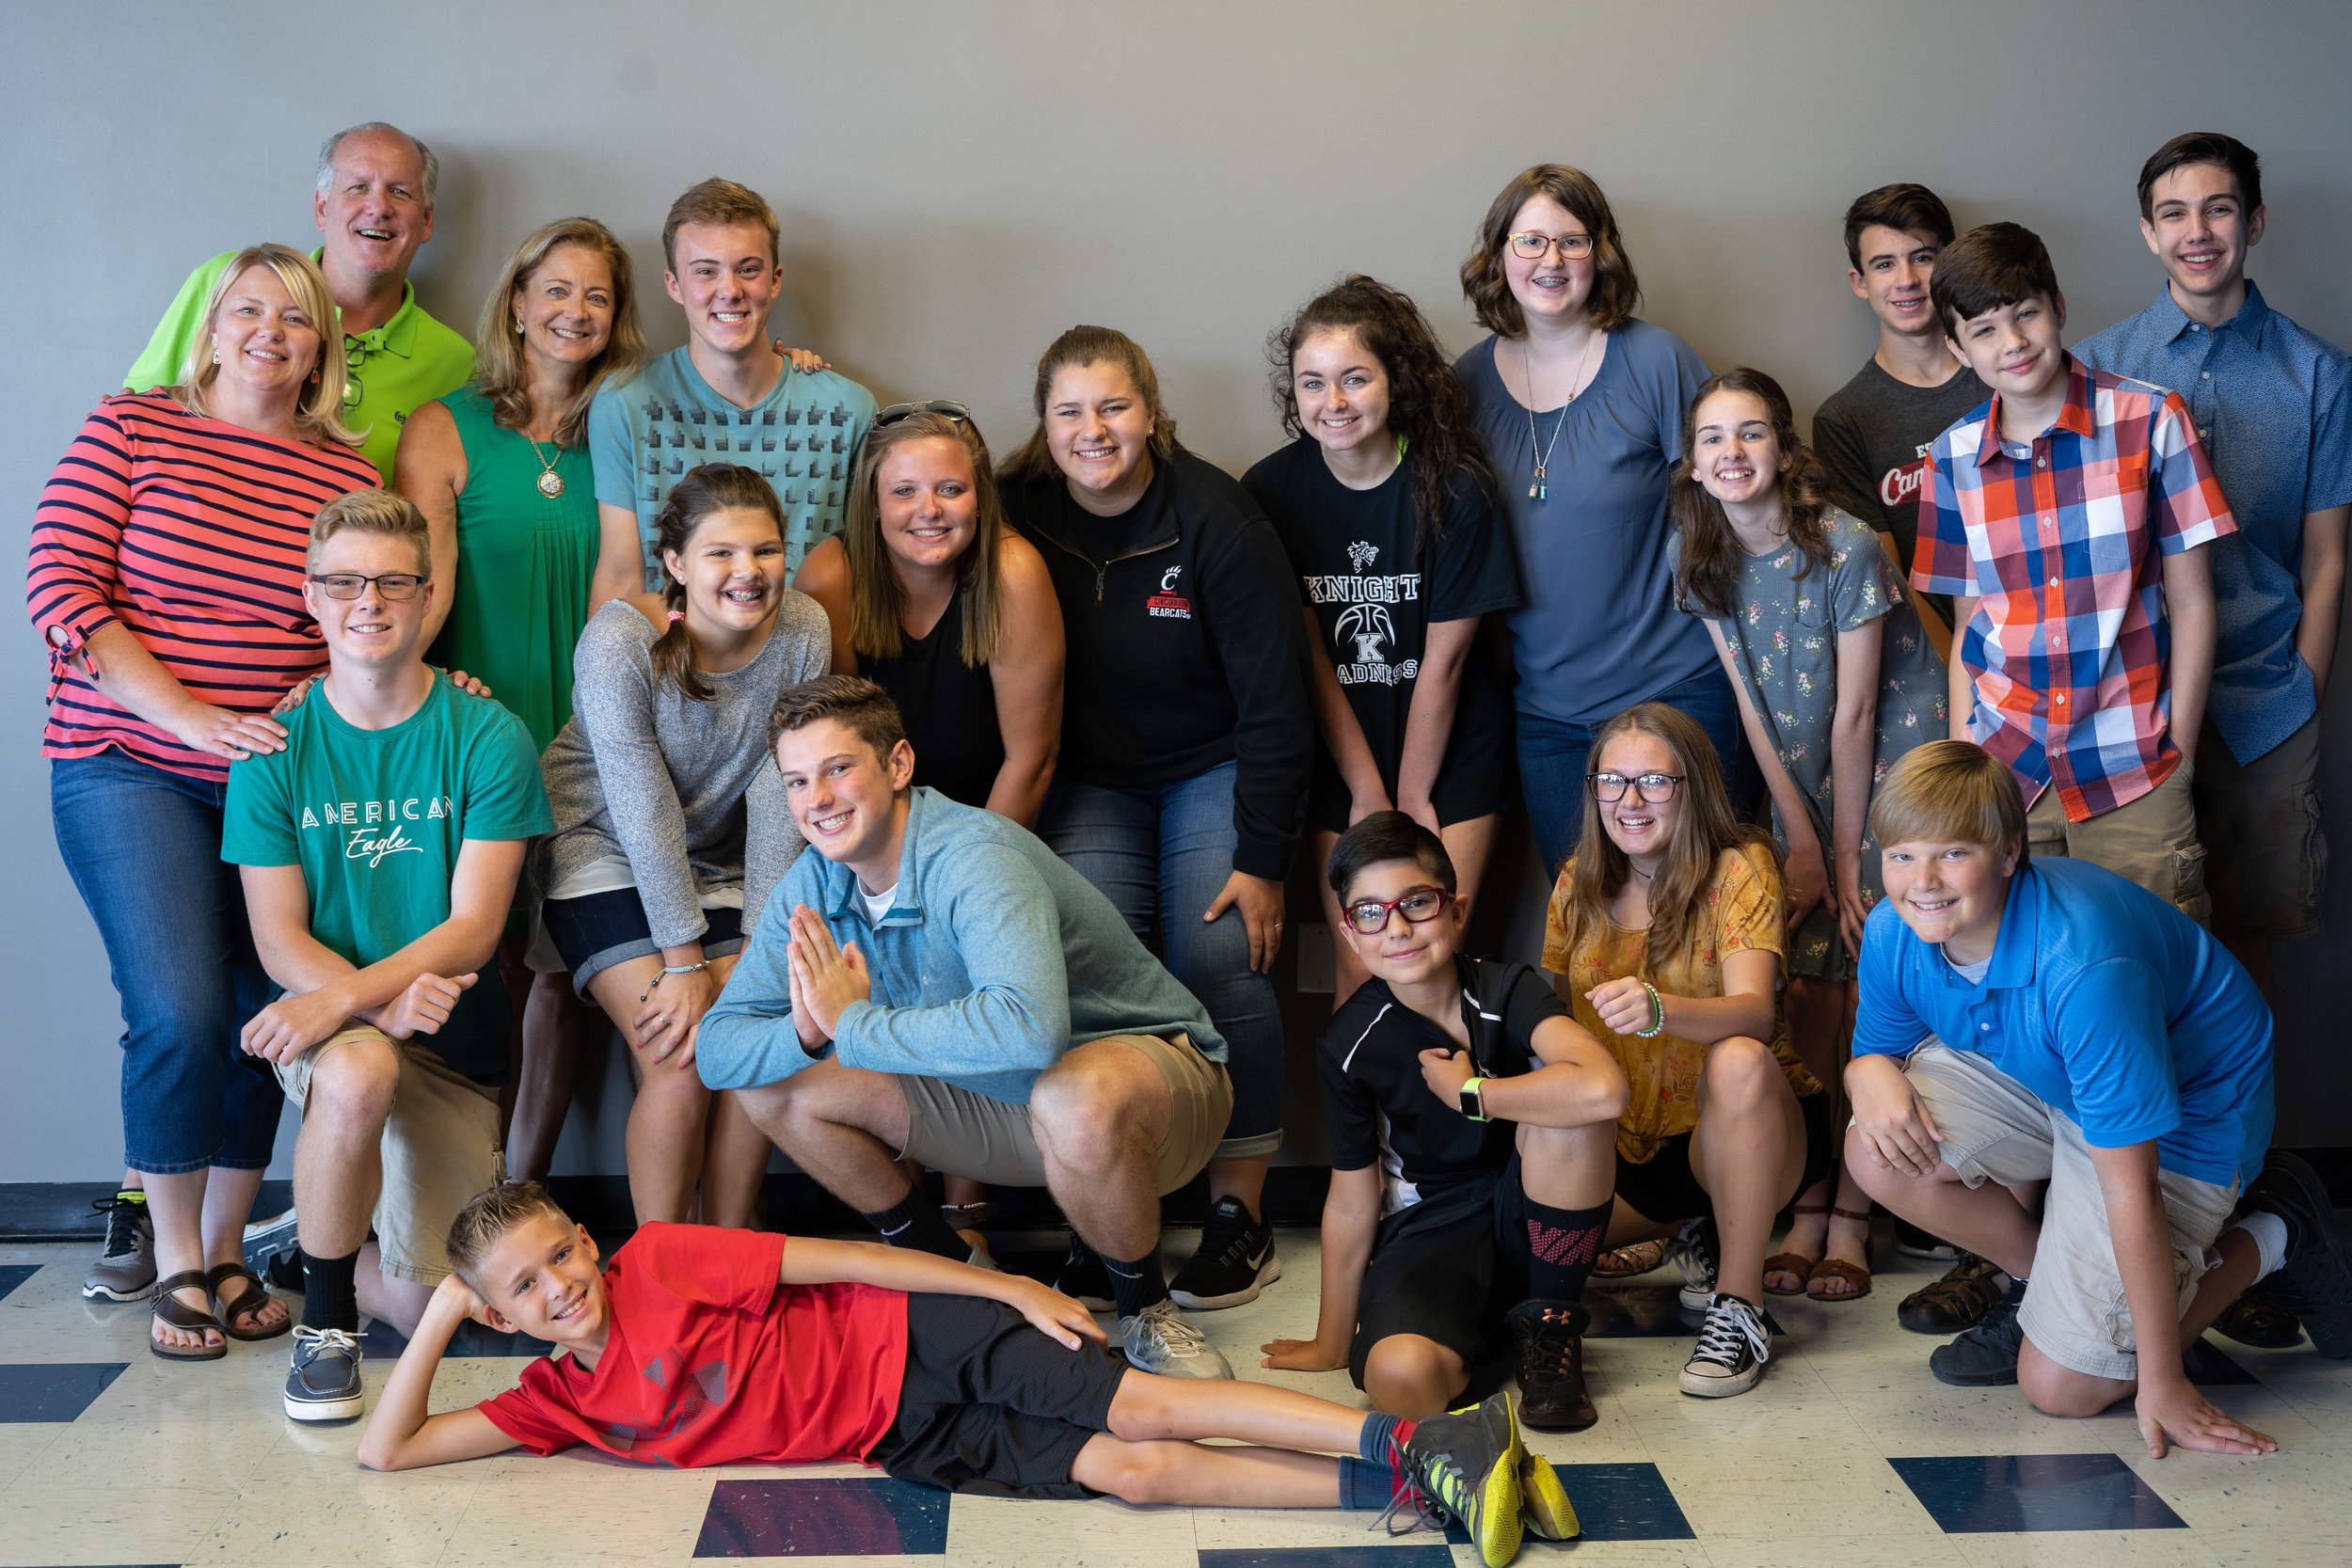 VENTURE STUDENTS - Weekly activities for teens in 6th-12th grade are back for the Fall! We're committed to providing a fun place for students to connect with God, with other students, and with trustworthy leaders that are dedicated to seeing students grow closer to Jesus.